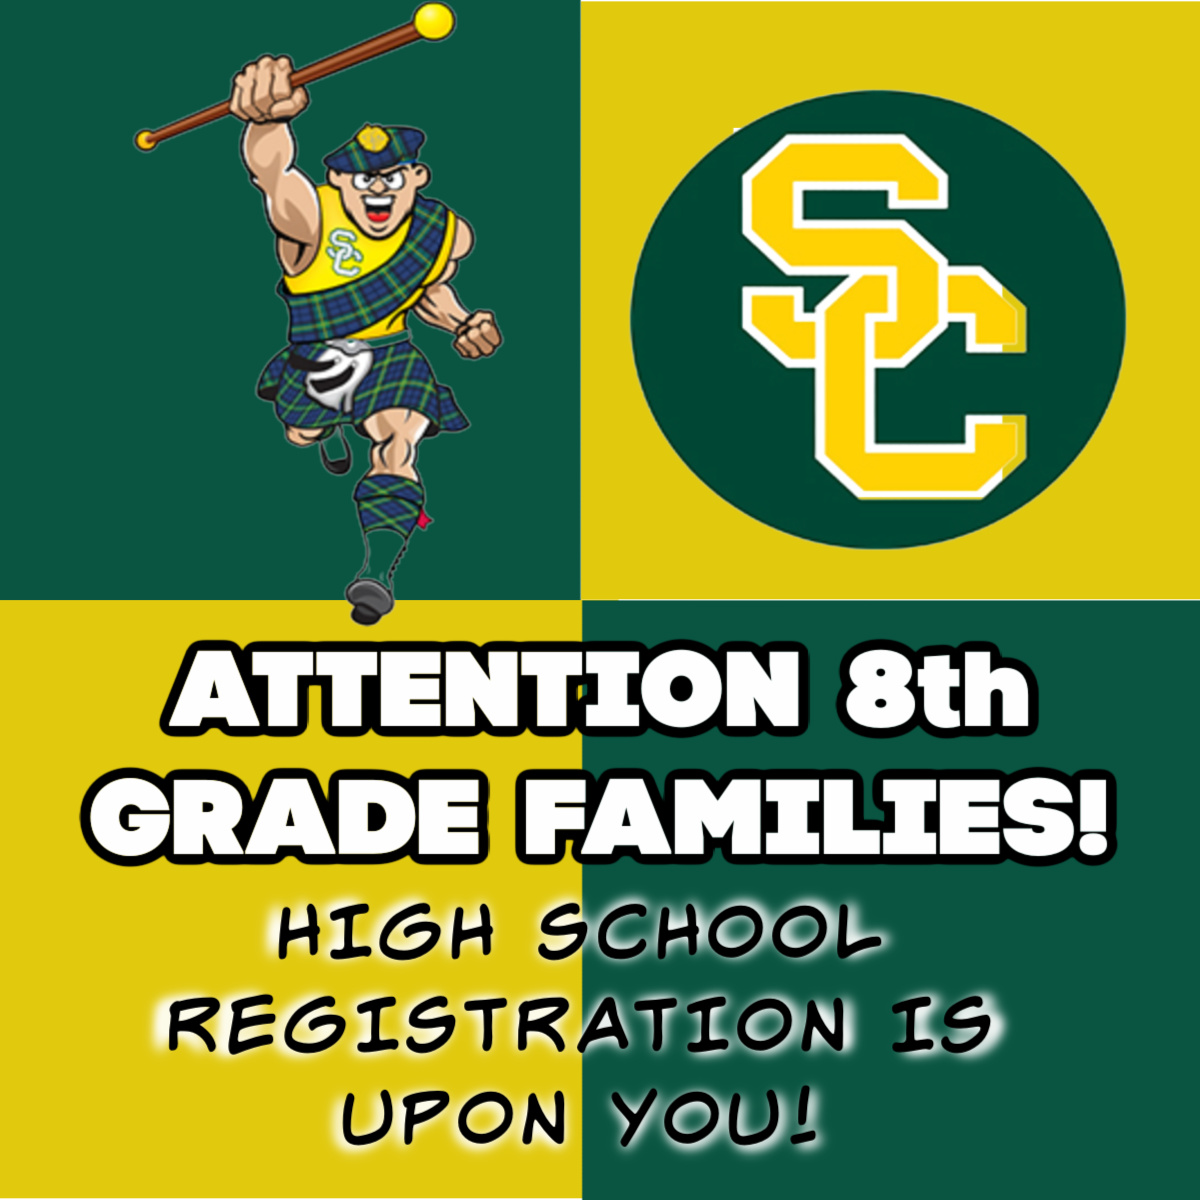 IMPORTANT REGISTRATION INFO FOR CURRENT 8TH GRADE FAMILIES